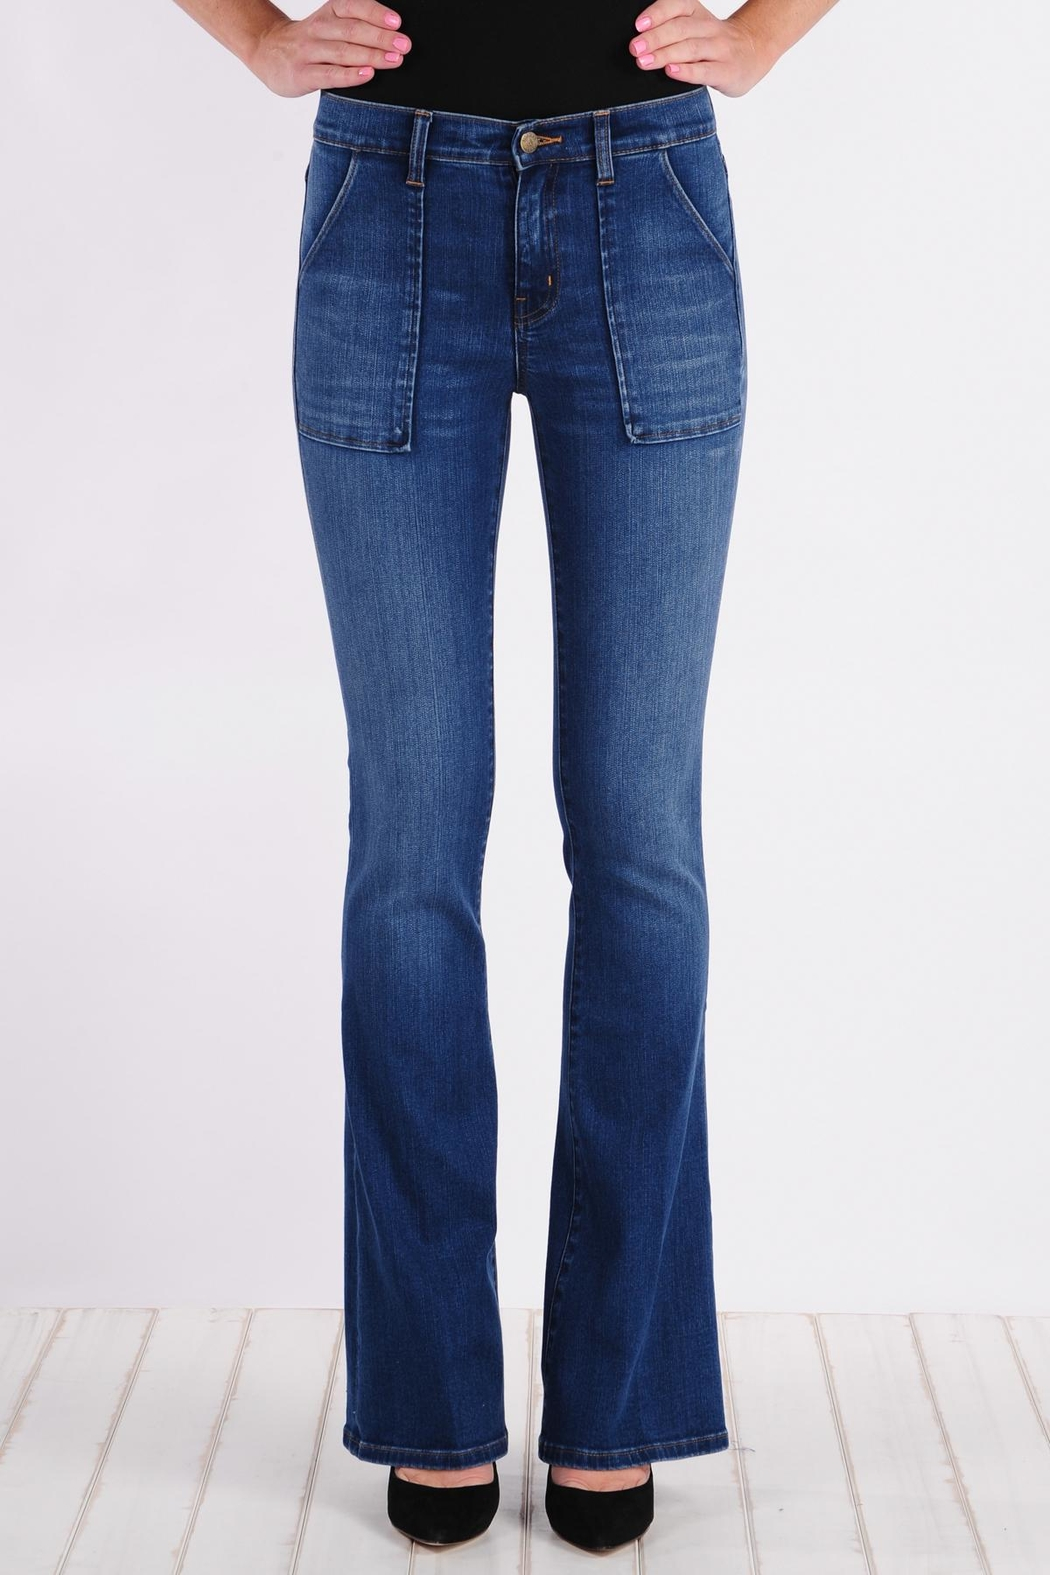 Henry & Belle High Waisted Flare Jeans - Main Image